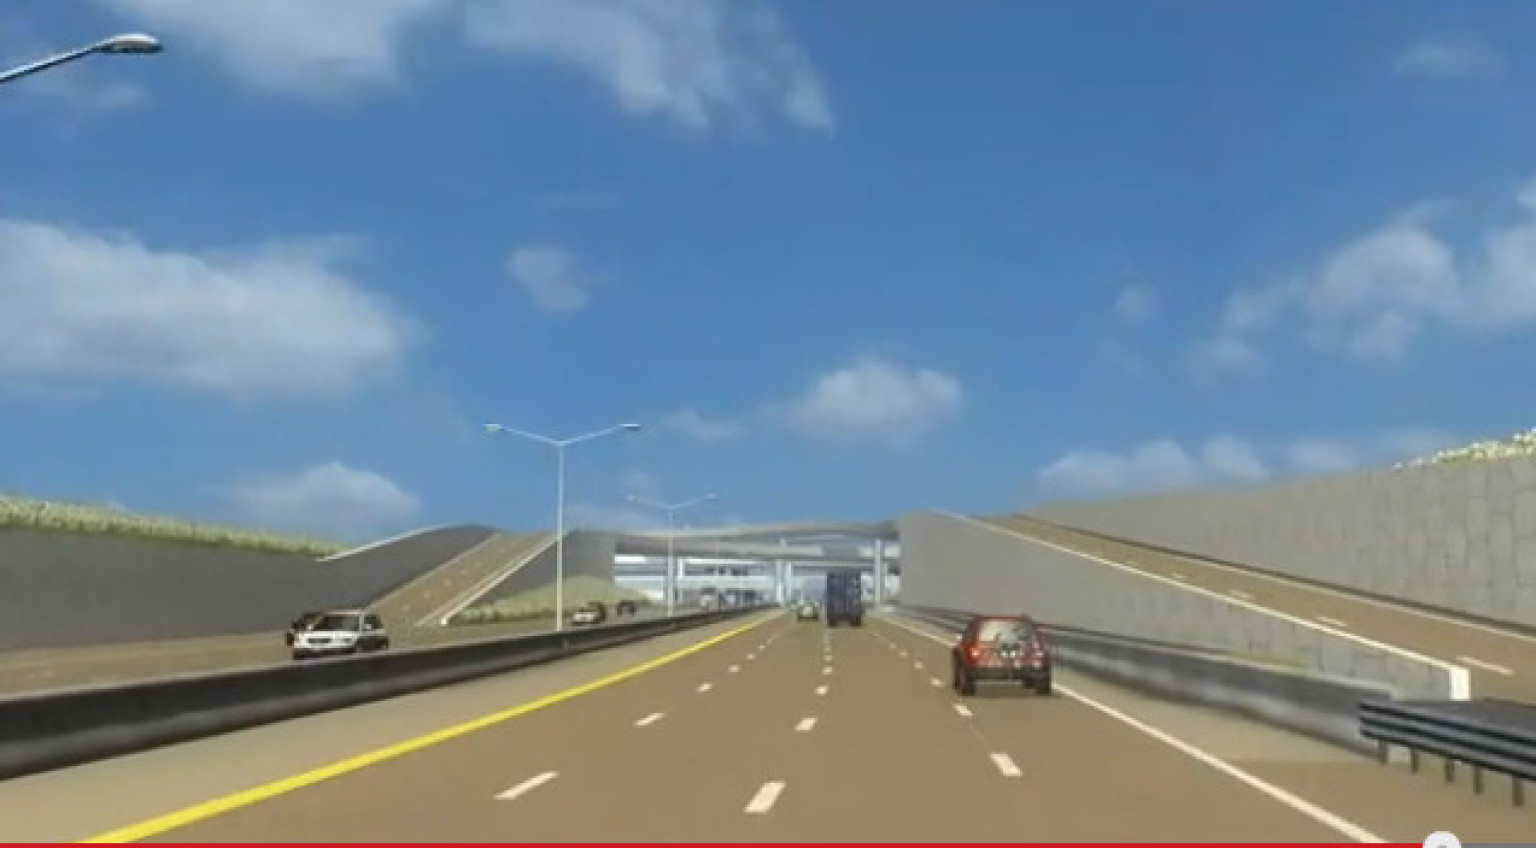 I-94 Expansion: Controversial SEMCOG Vote Passes, Will Widen